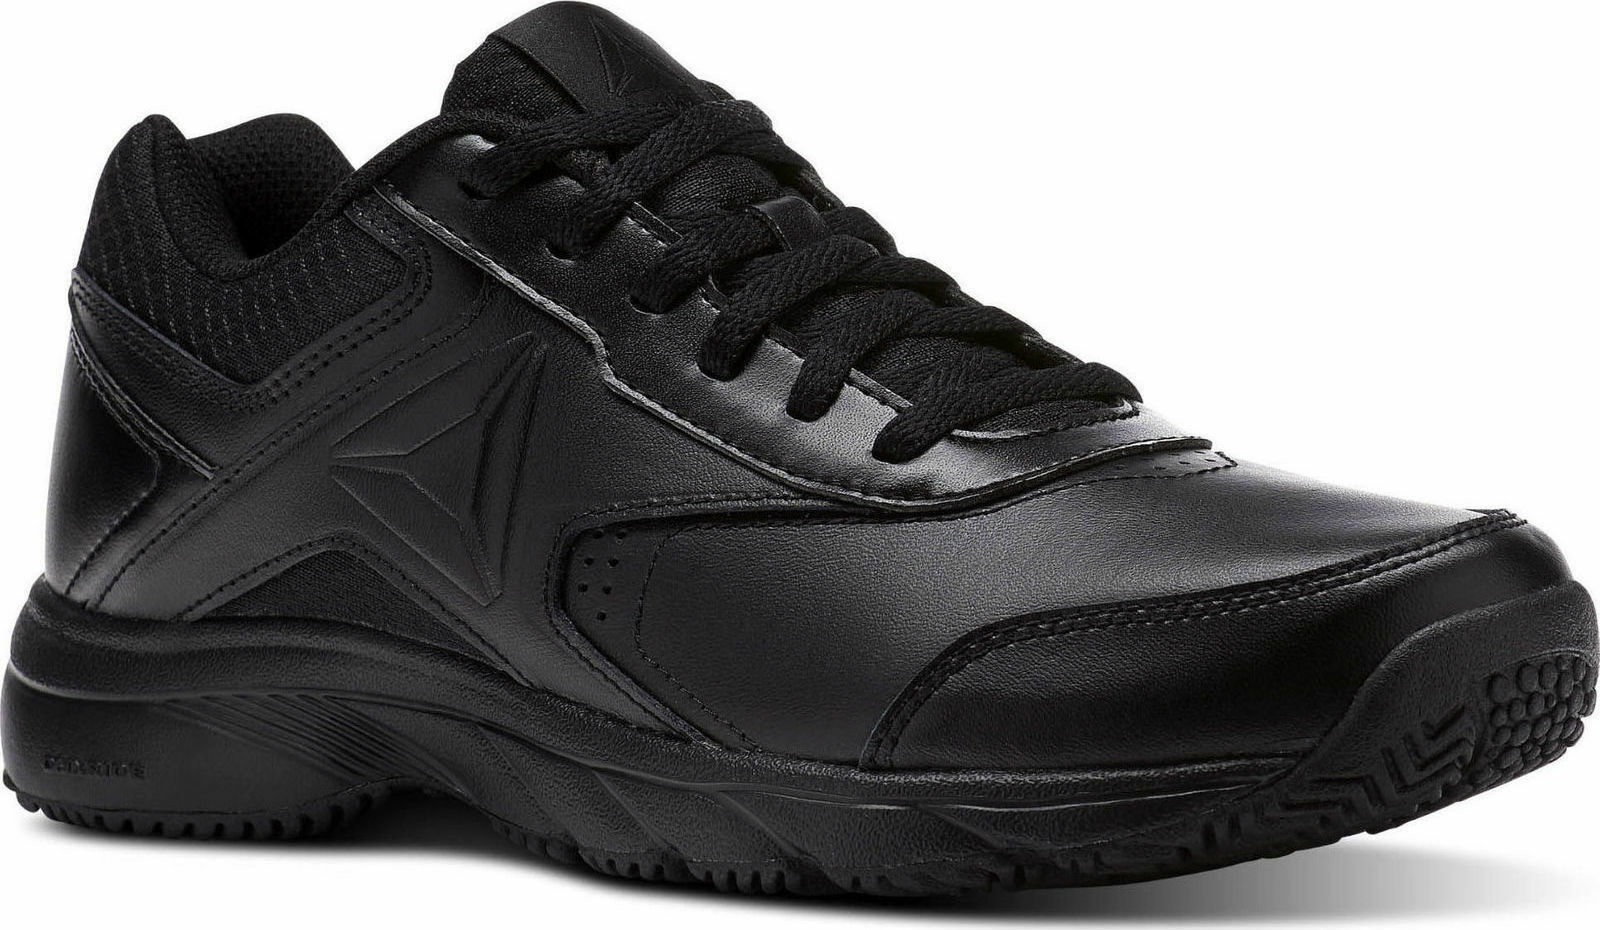 Reebok Women shoes Work N Cushion 3.0 Walking Black Slip & Oil Resistant BS9527